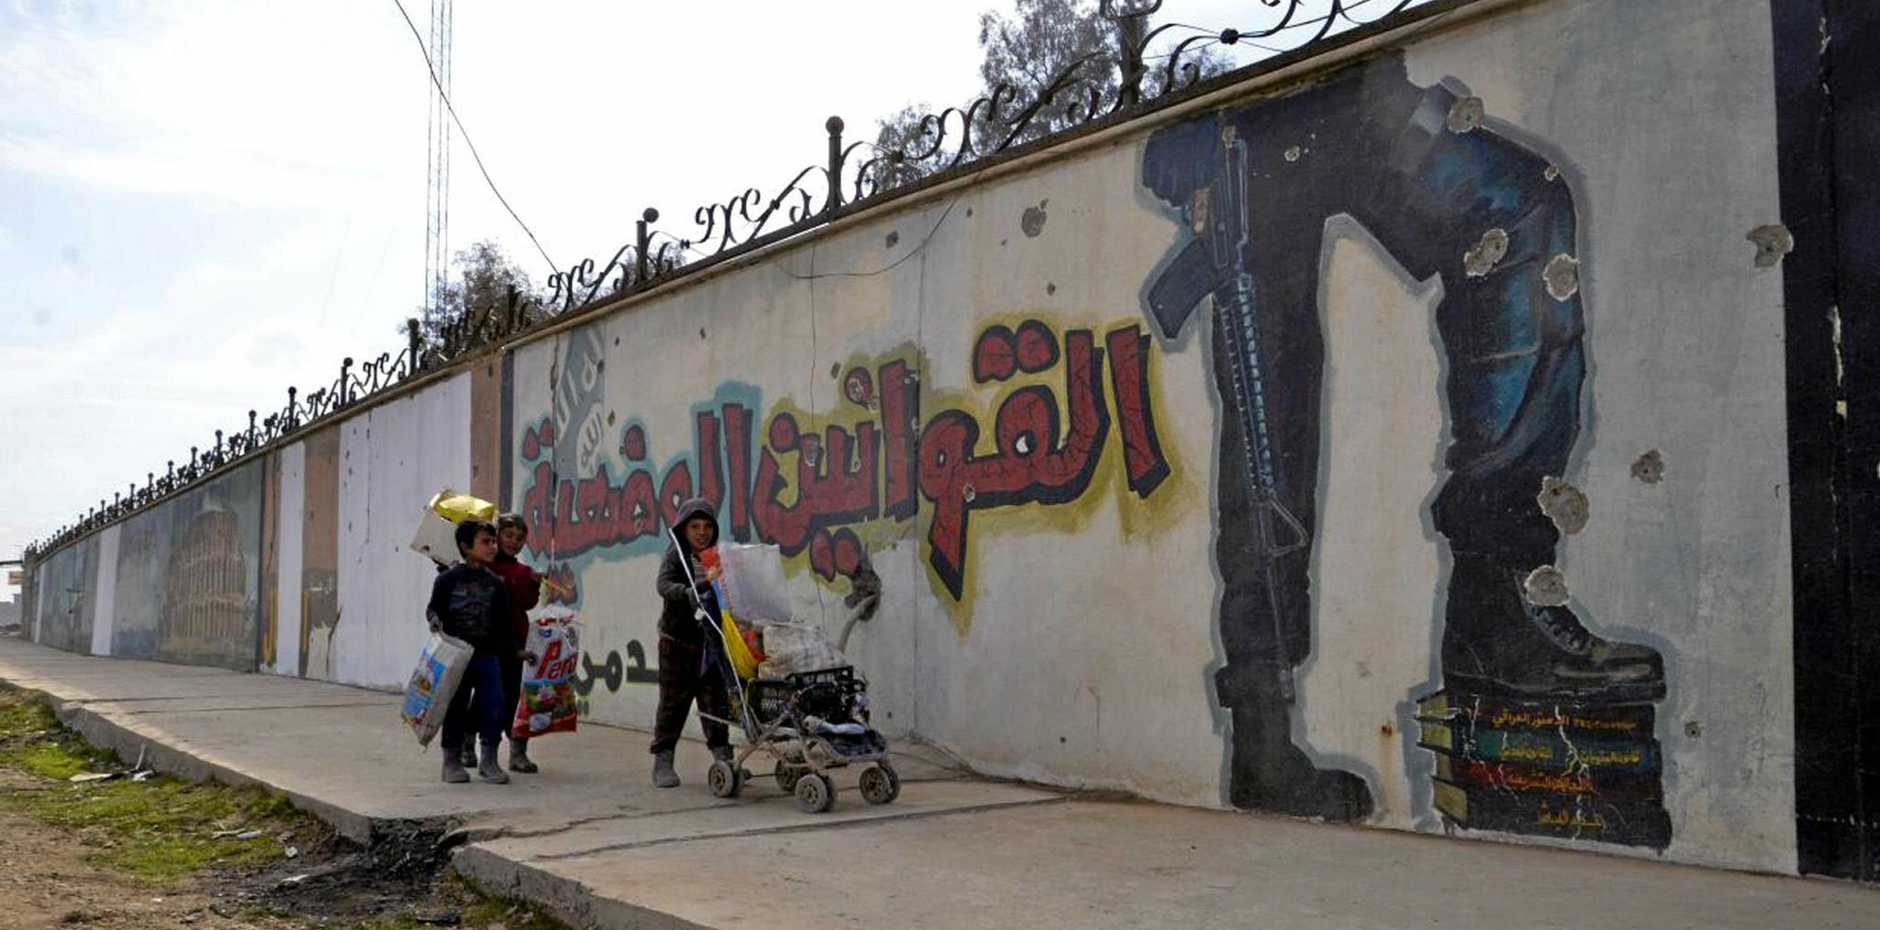 Iraqi boys from Mosul walk next to a mural contain graphics and slogans written by Islamic State that reads